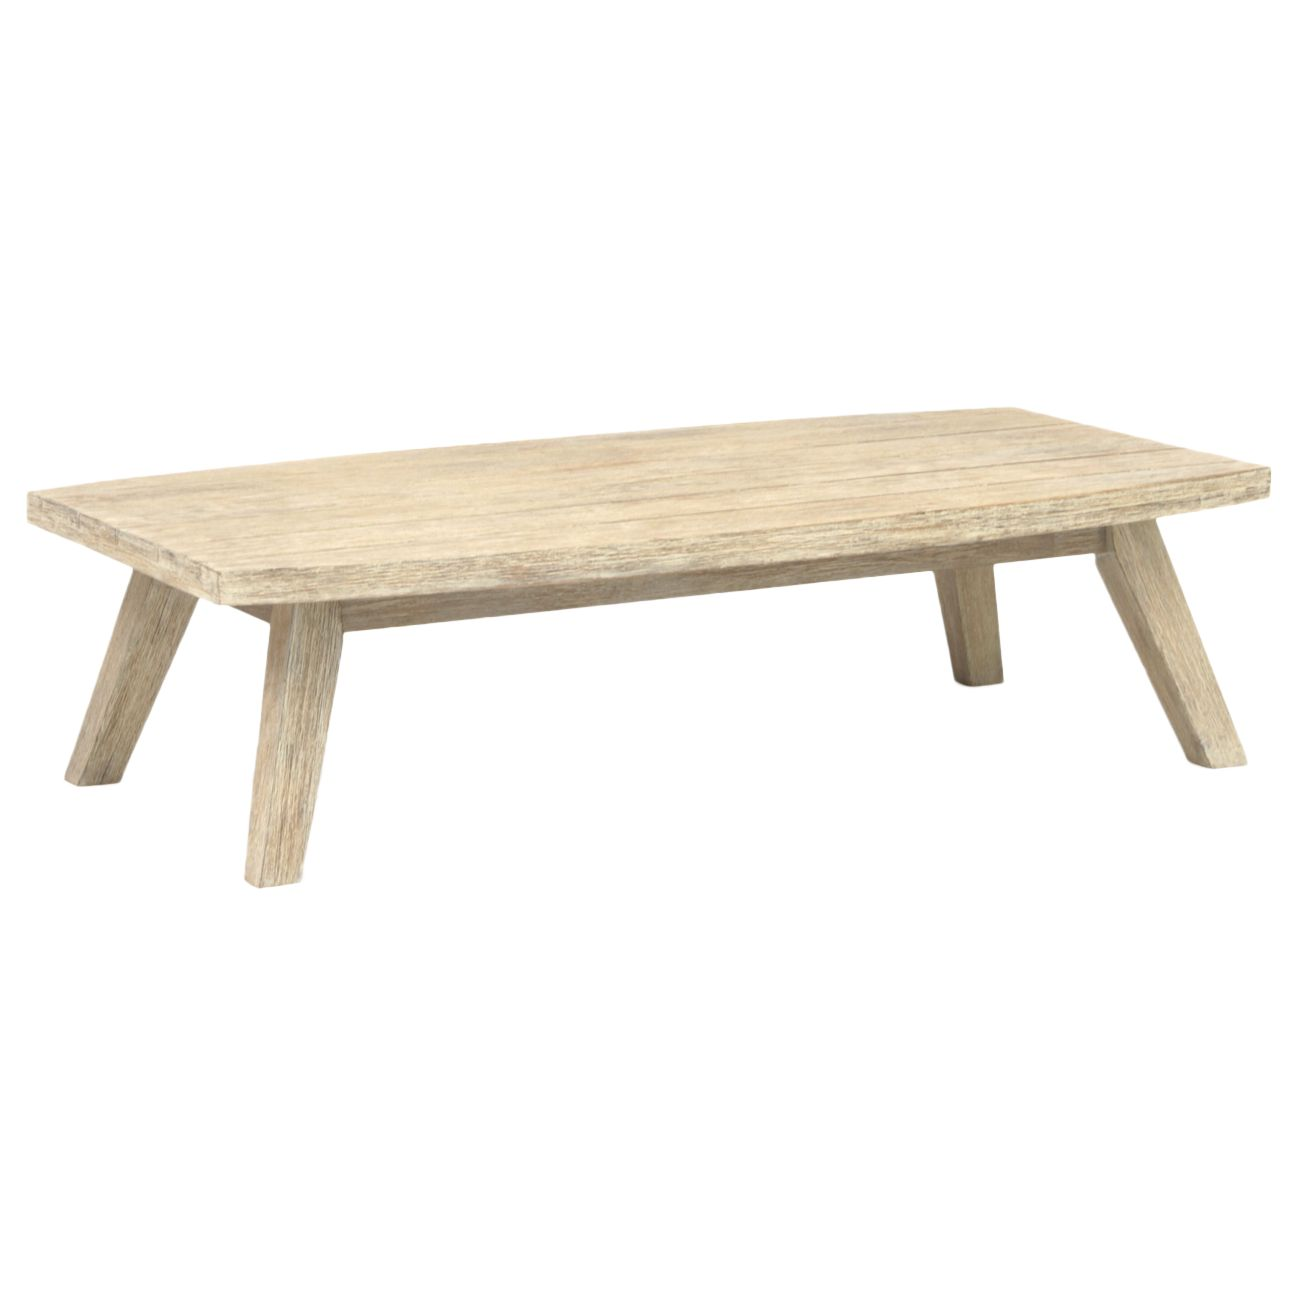 Kettler KETTLER Cora Garden Coffee Table, FSC-Certified (Acacia), Smoke White